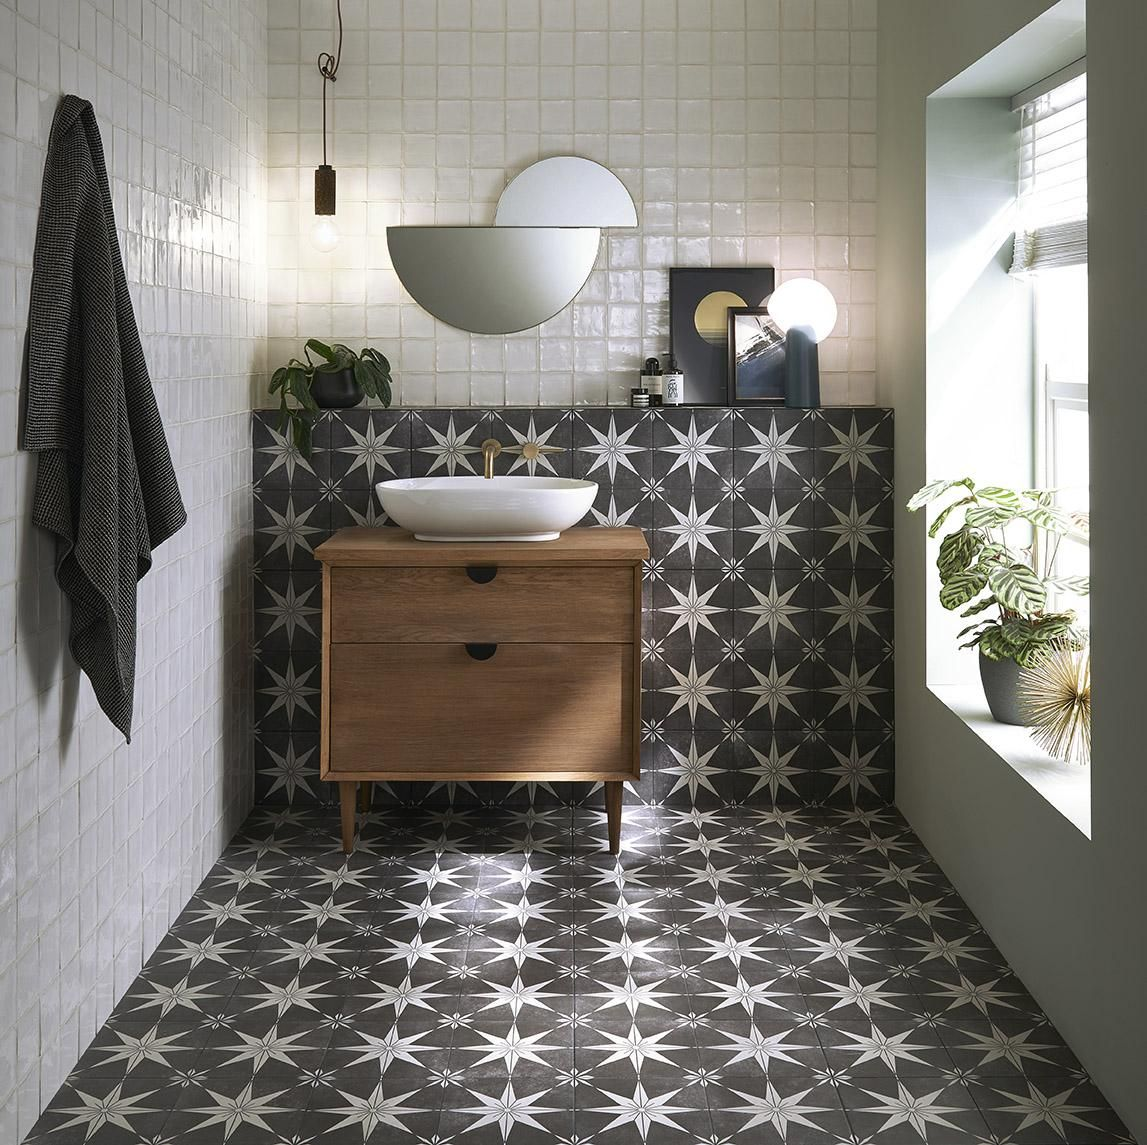 How To Clean Grout The Best Ways To Tackle Shower Wall And Floor Tiles Real Homes